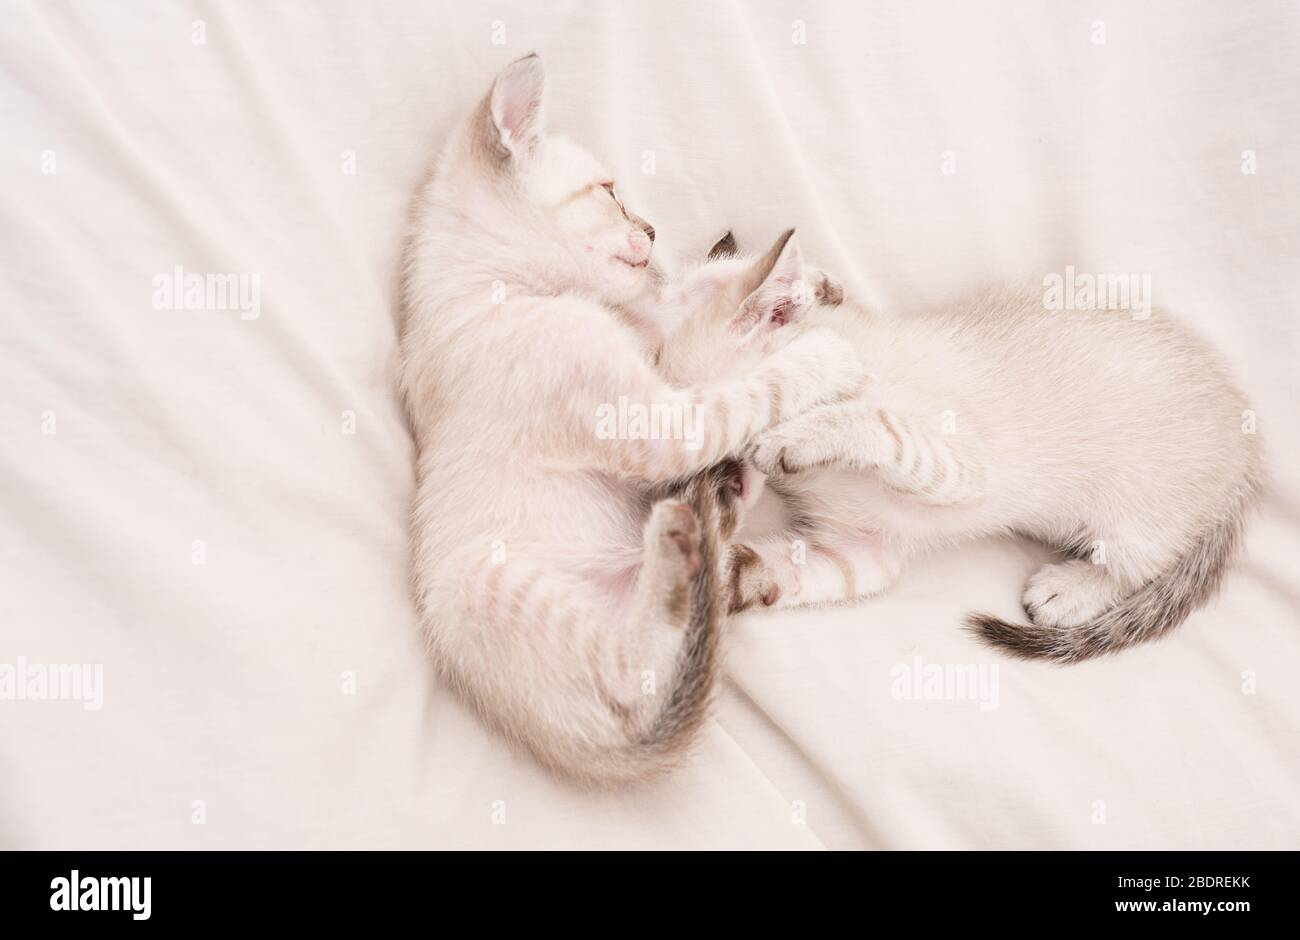 Cozy Home Small Cute Kittens Relax On White Sheets Baby Cat Cute White Kittens Tender And Lovely White Kittens Playing With Each Other Best Friends Cat Family Pets Concept Share Love Stock